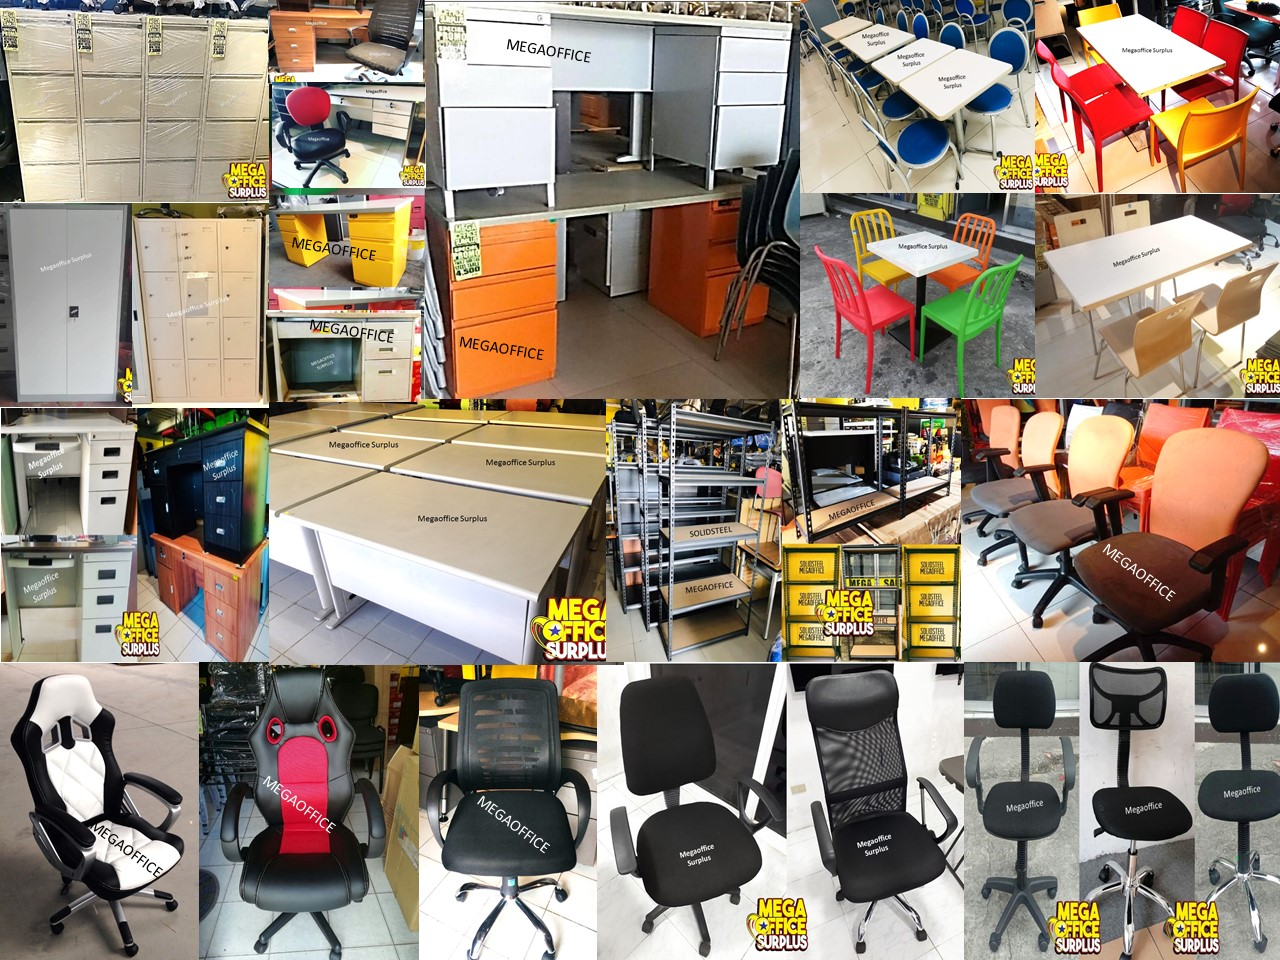 Office Furniture Warehouse Importer Megaoffice